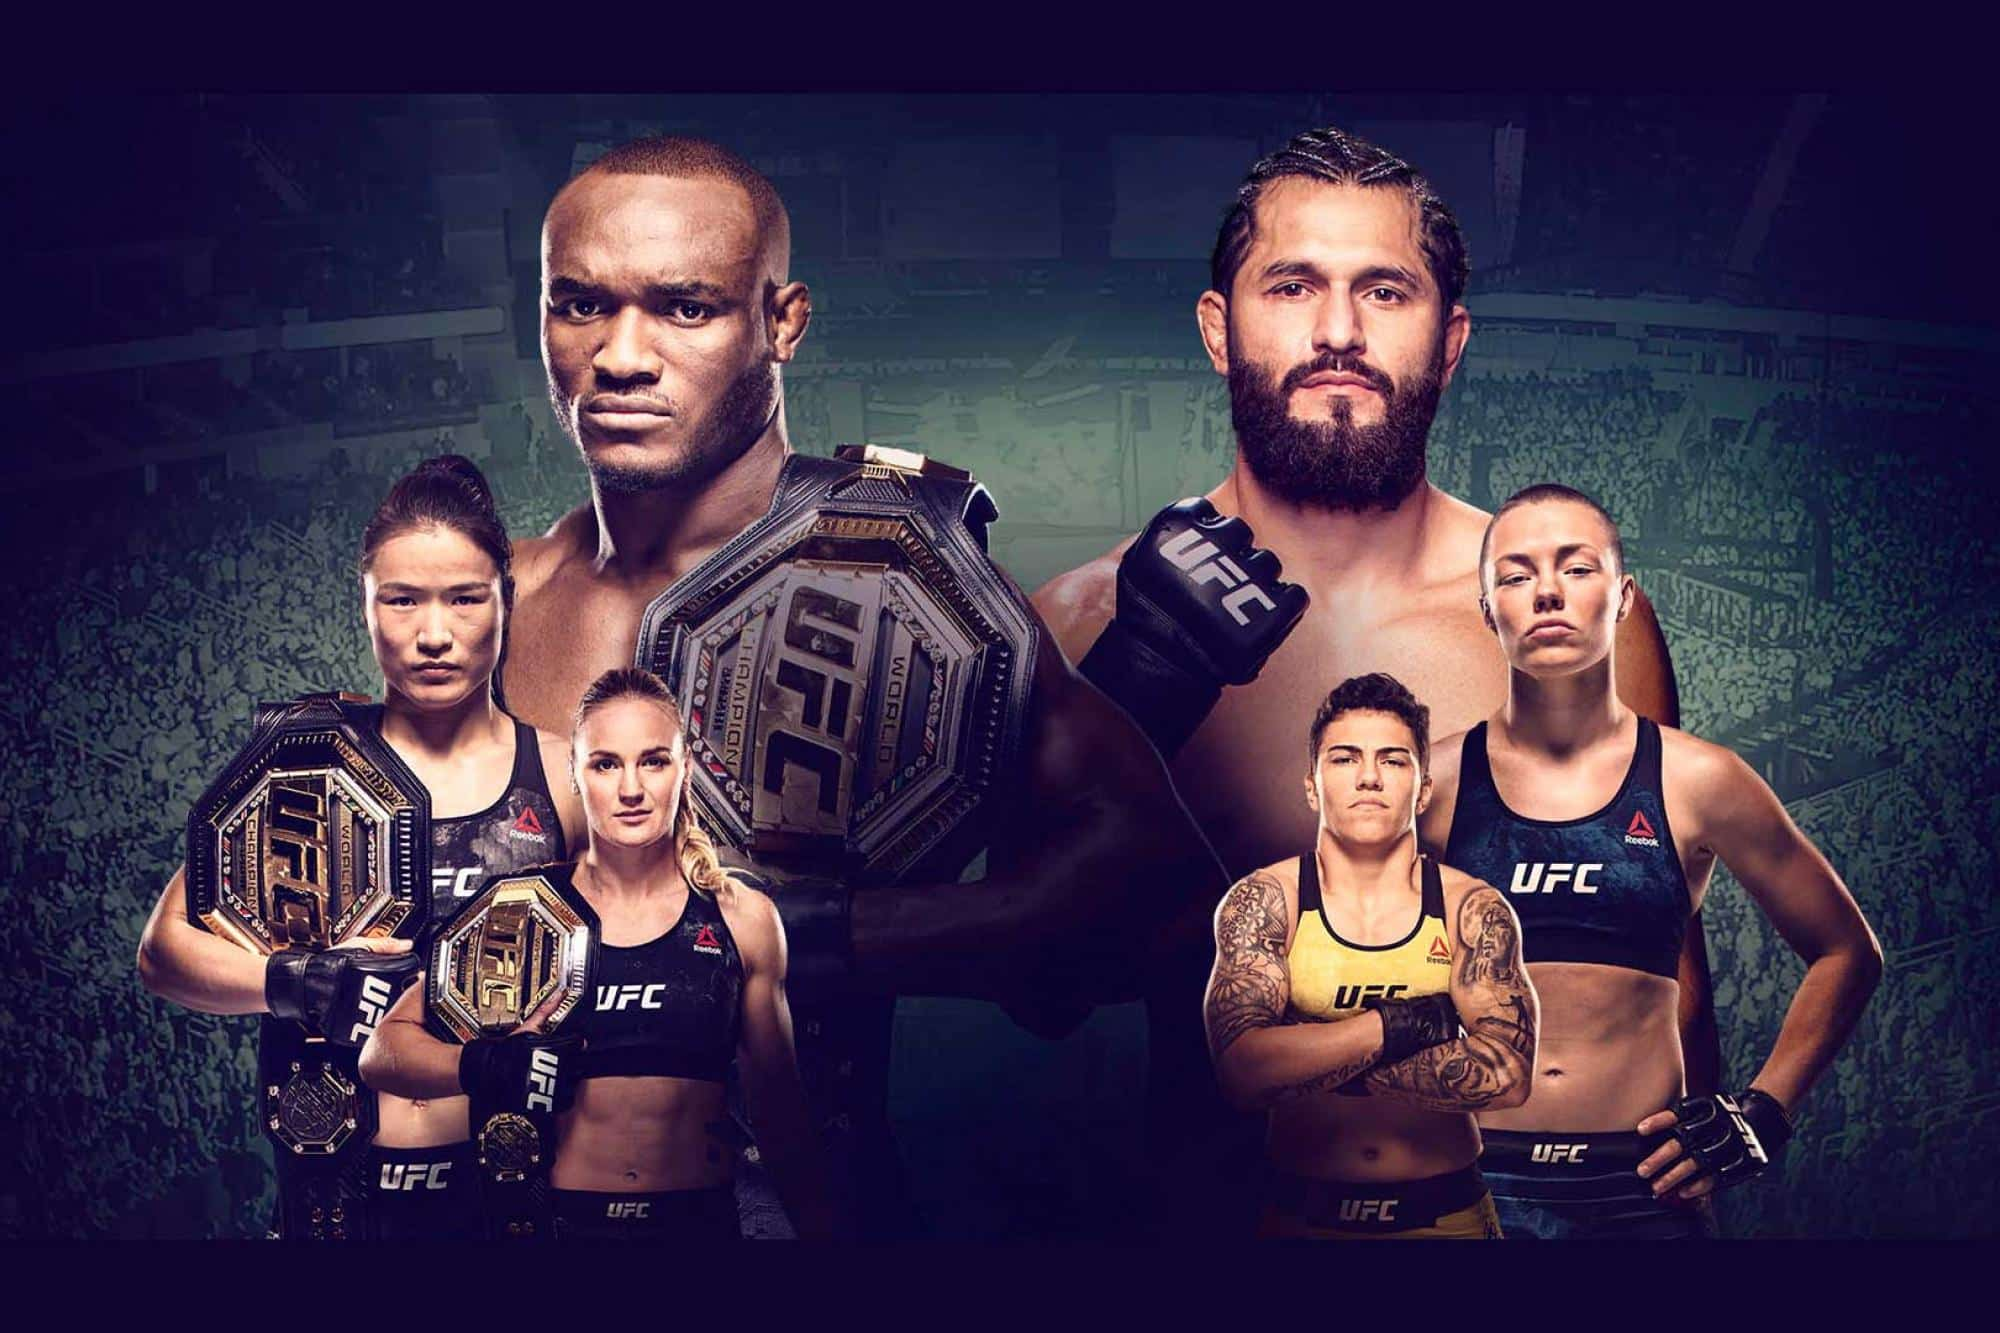 UFC 261 Picks & Prediction | The Fight Show (Ep. 38)